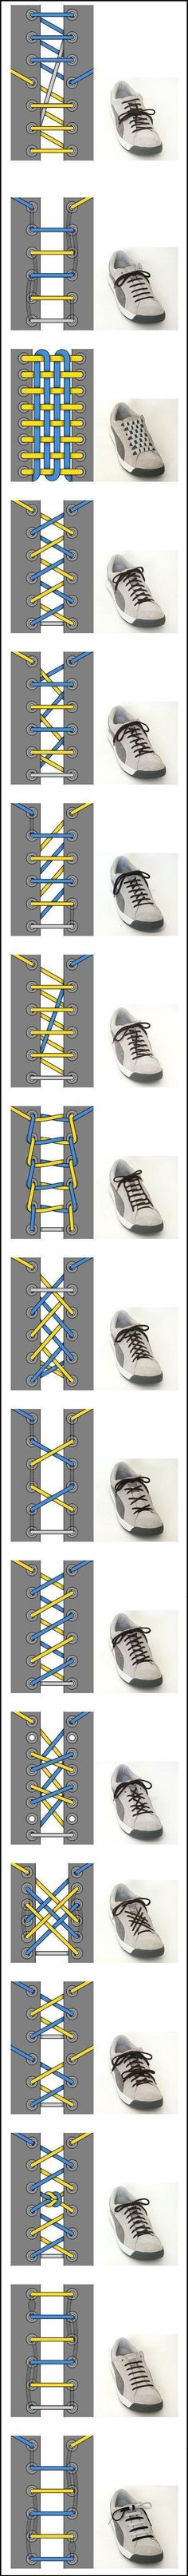 new idea to tie your shoelace. bisa tiap hari ganti nih :)